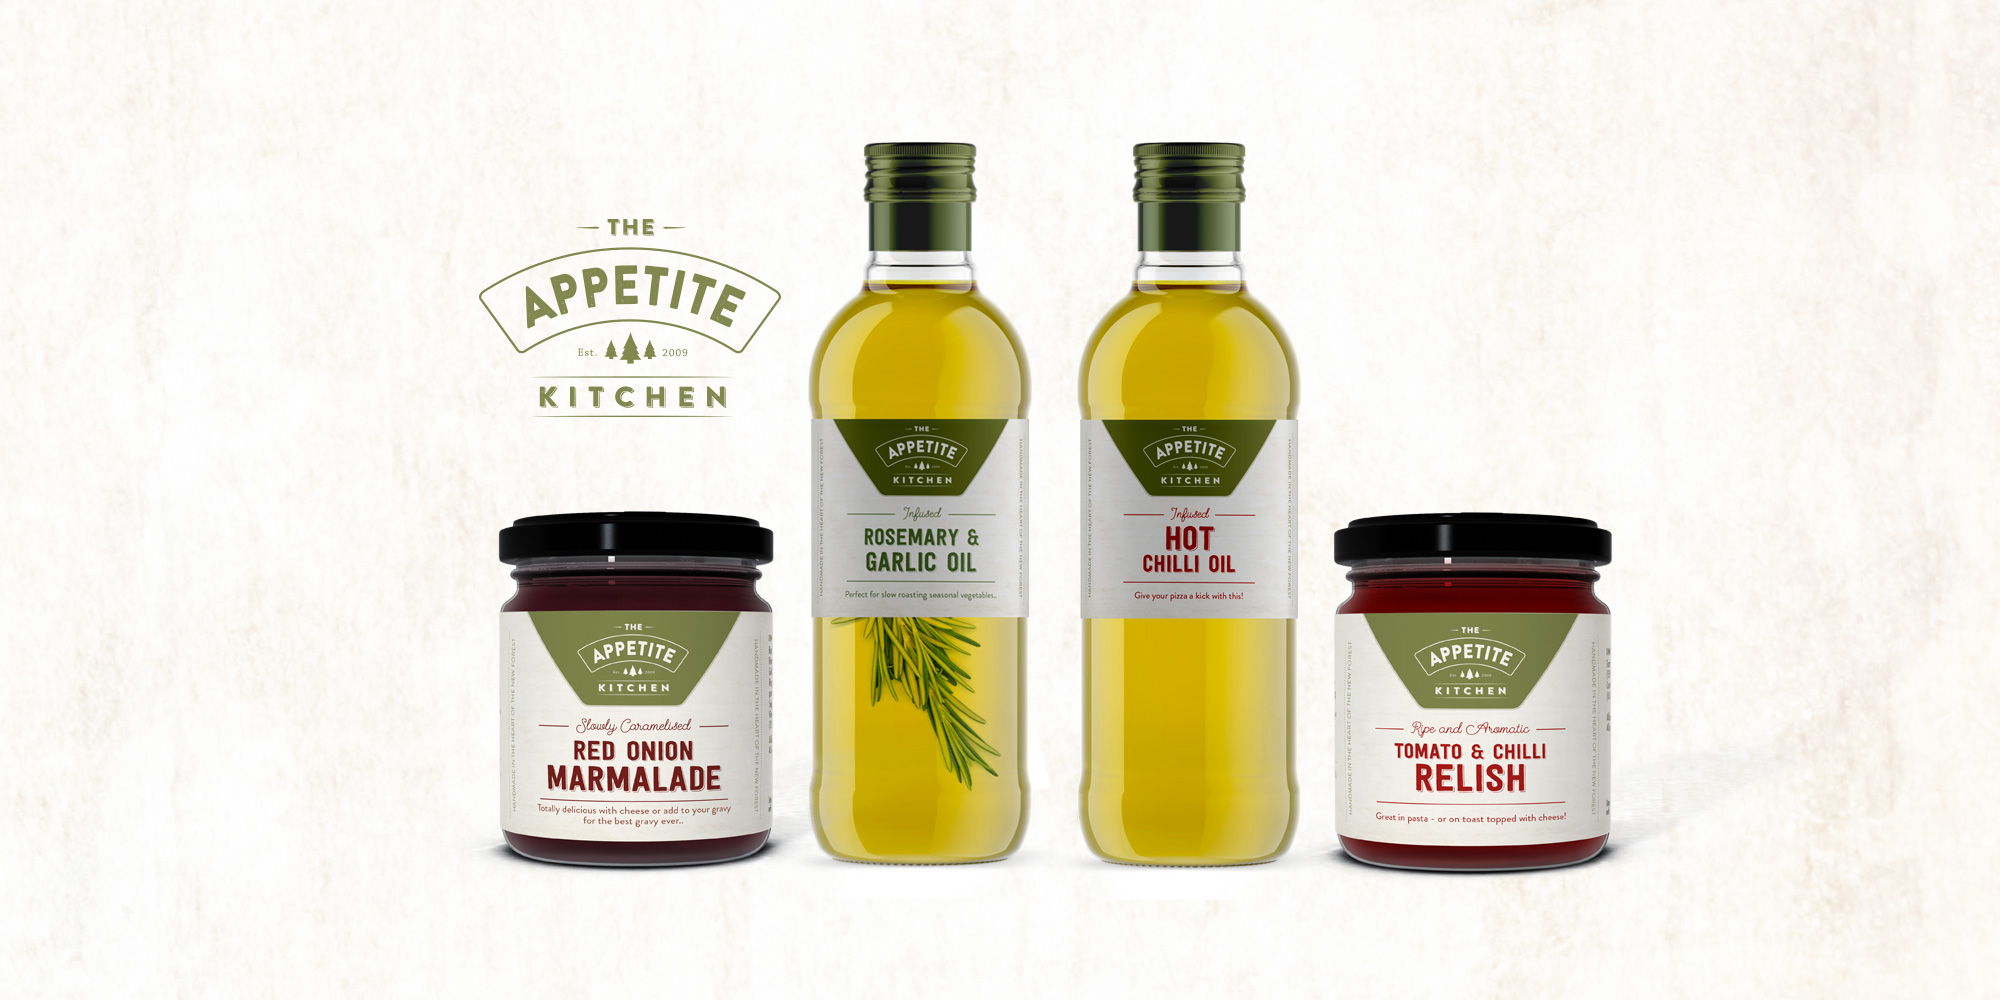 The Appetite Kitchen product mockup